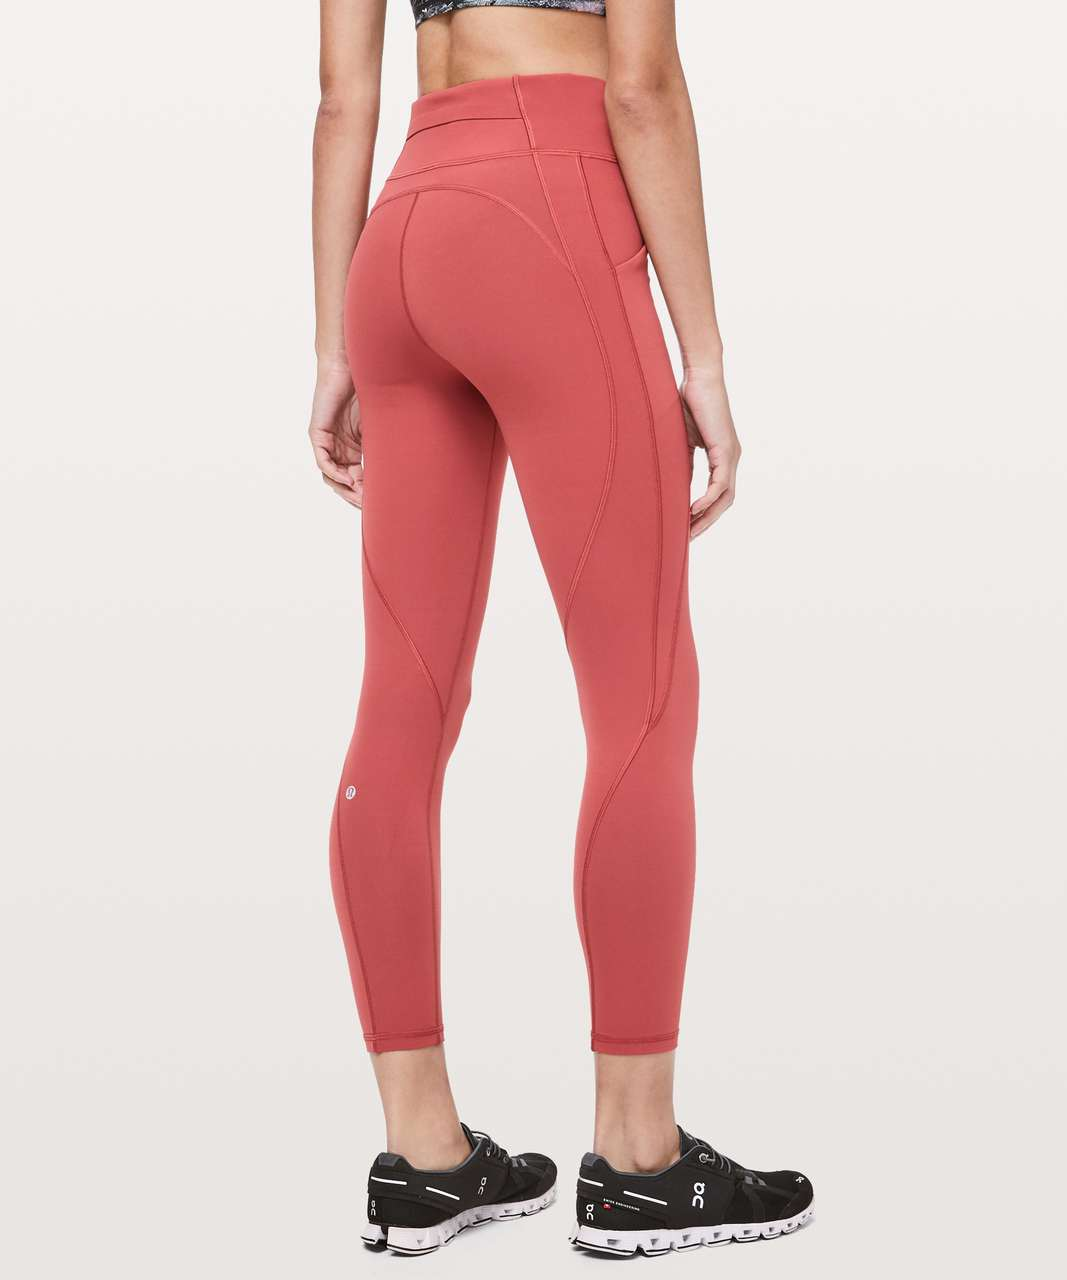 "Lululemon Time To Sweat 7/8 Tight 25"" - Brick Rose"